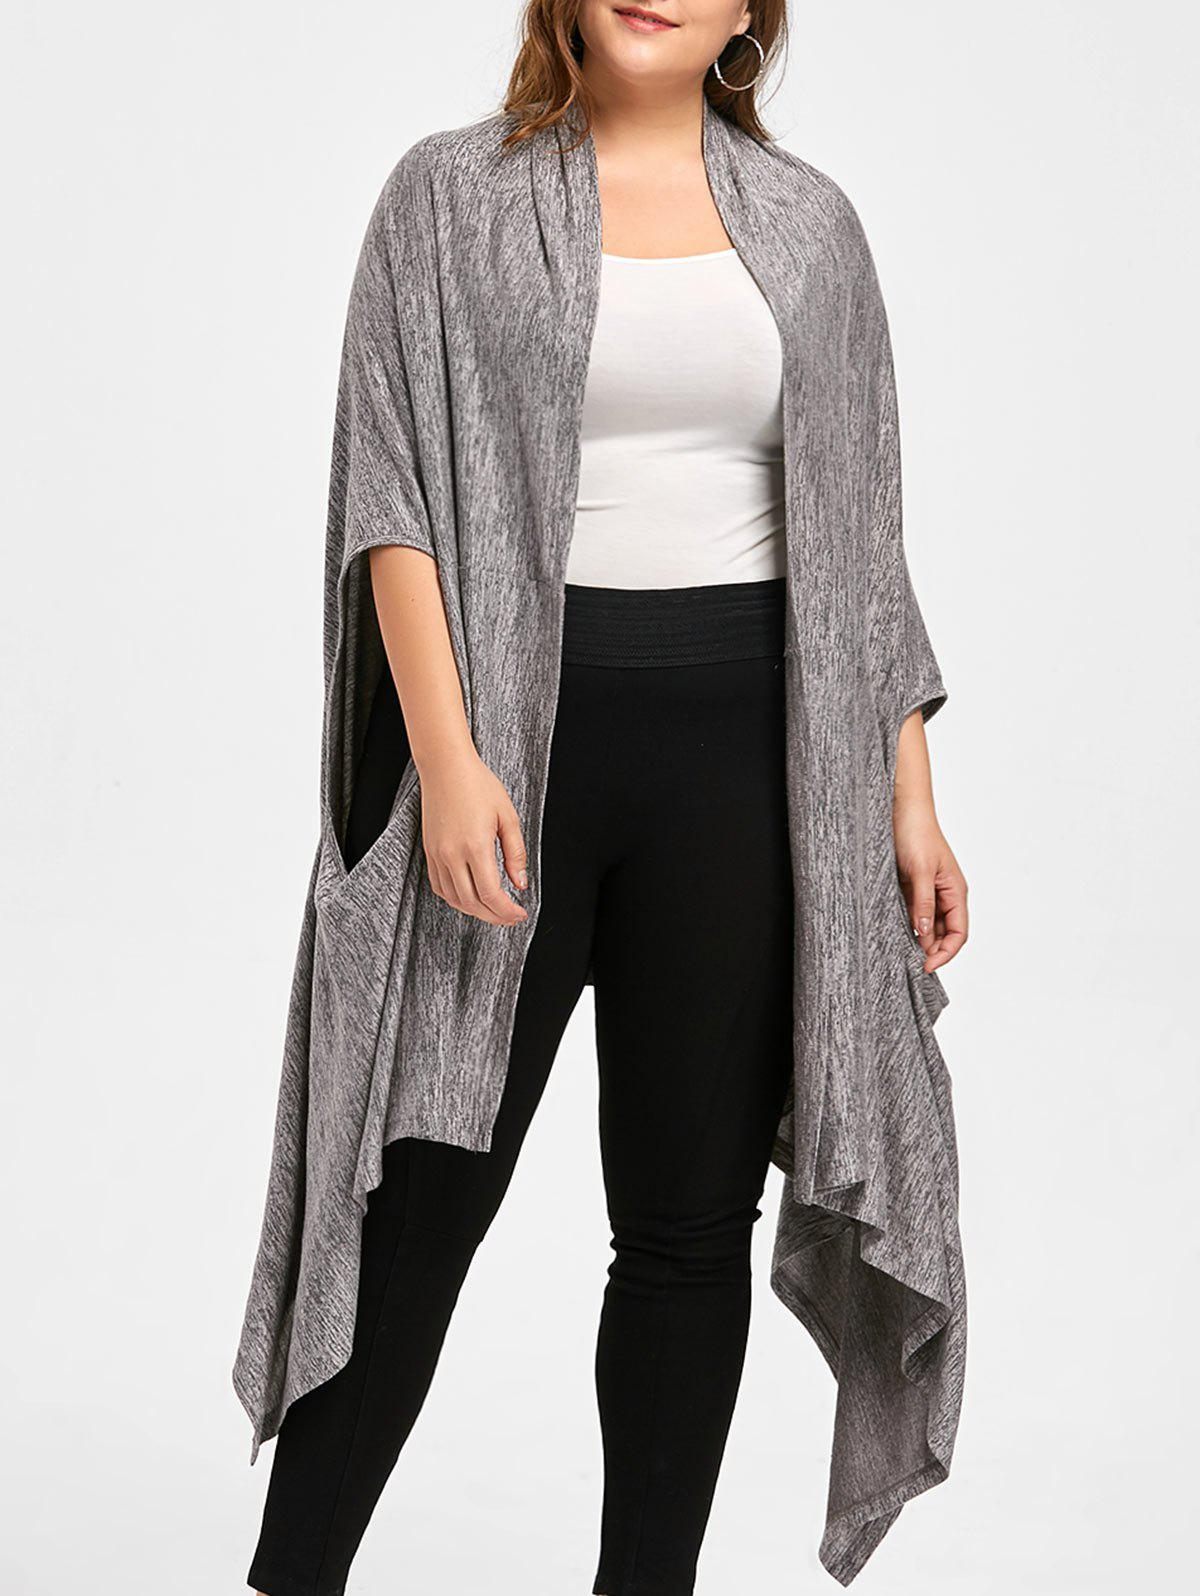 Plus Size Marled Multi-way Wear CardiganWOMEN<br><br>Size: 5XL; Color: DUSTY GREY; Type: Cardigans; Material: Rayon; Sleeve Length: Full; Collar: Collarless; Style: Novelty; Season: Fall,Spring; Pattern Type: Solid; Weight: 0.4700kg; Package Contents: 1 x Cardigan;